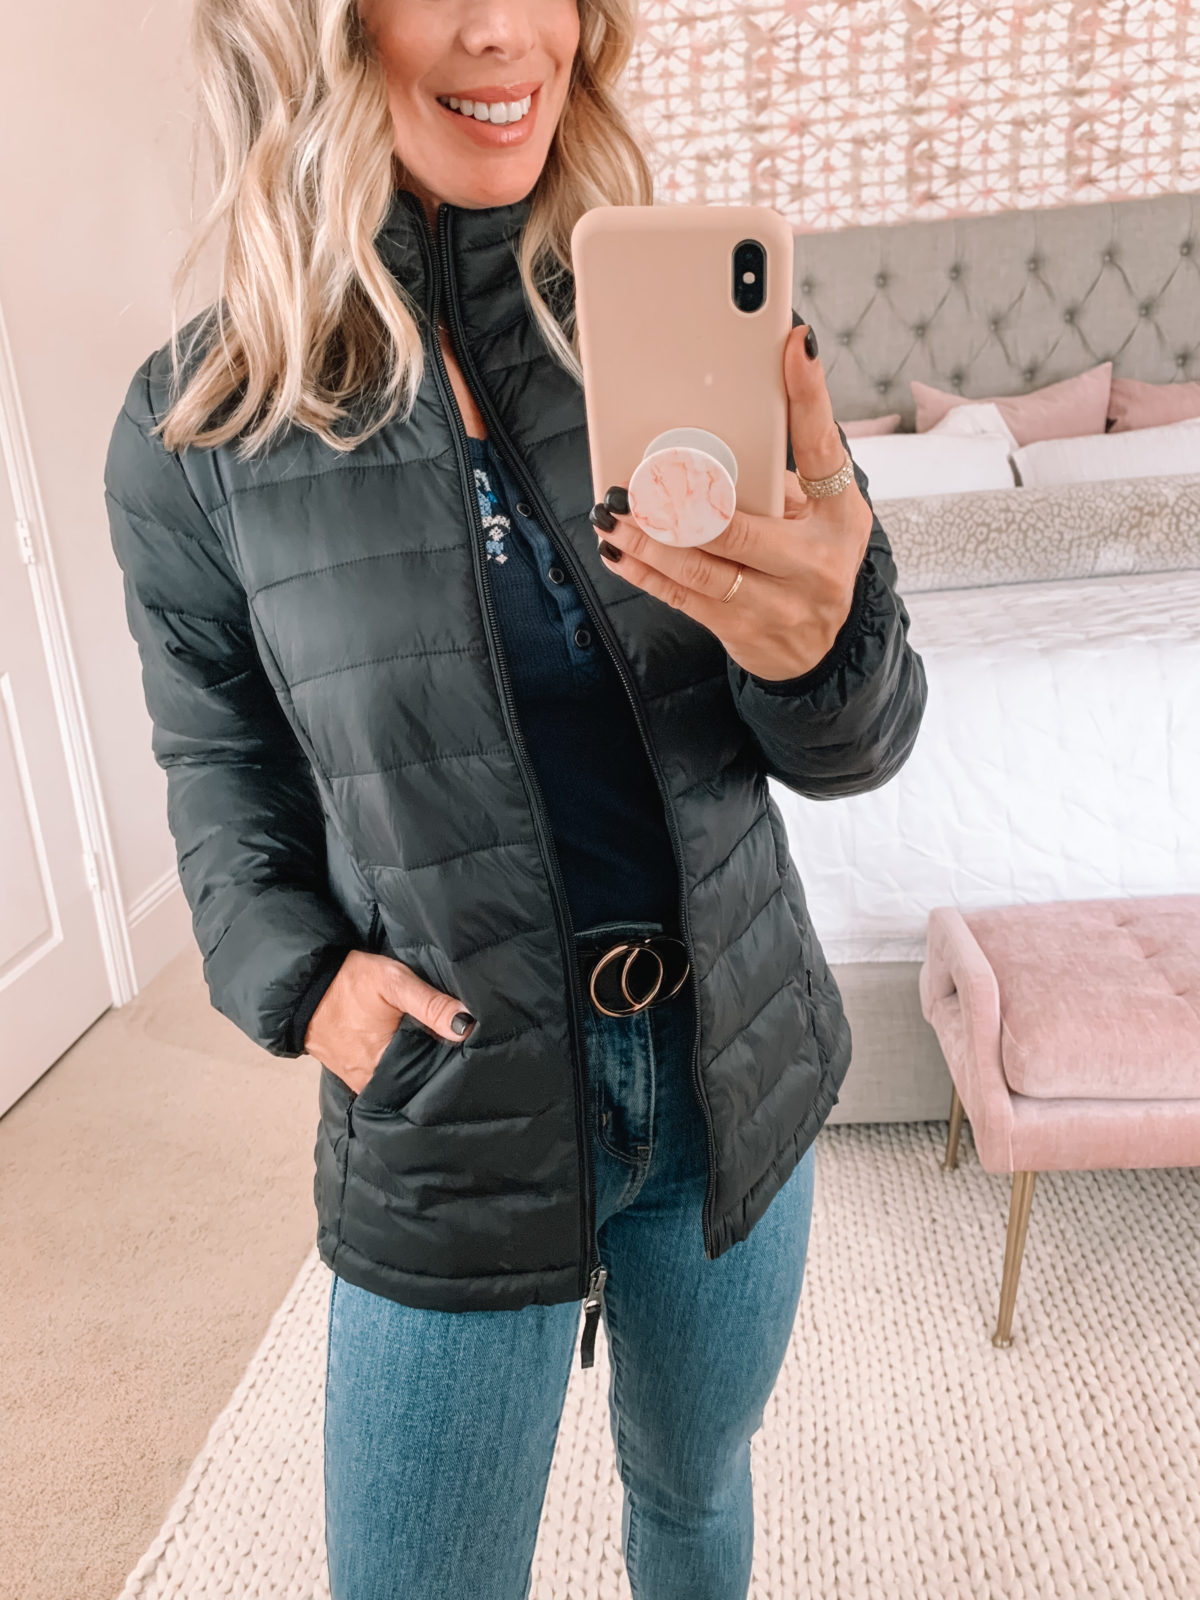 Amazon Fashion Faves, Puffer Jacket, Circle Belt, Jeans